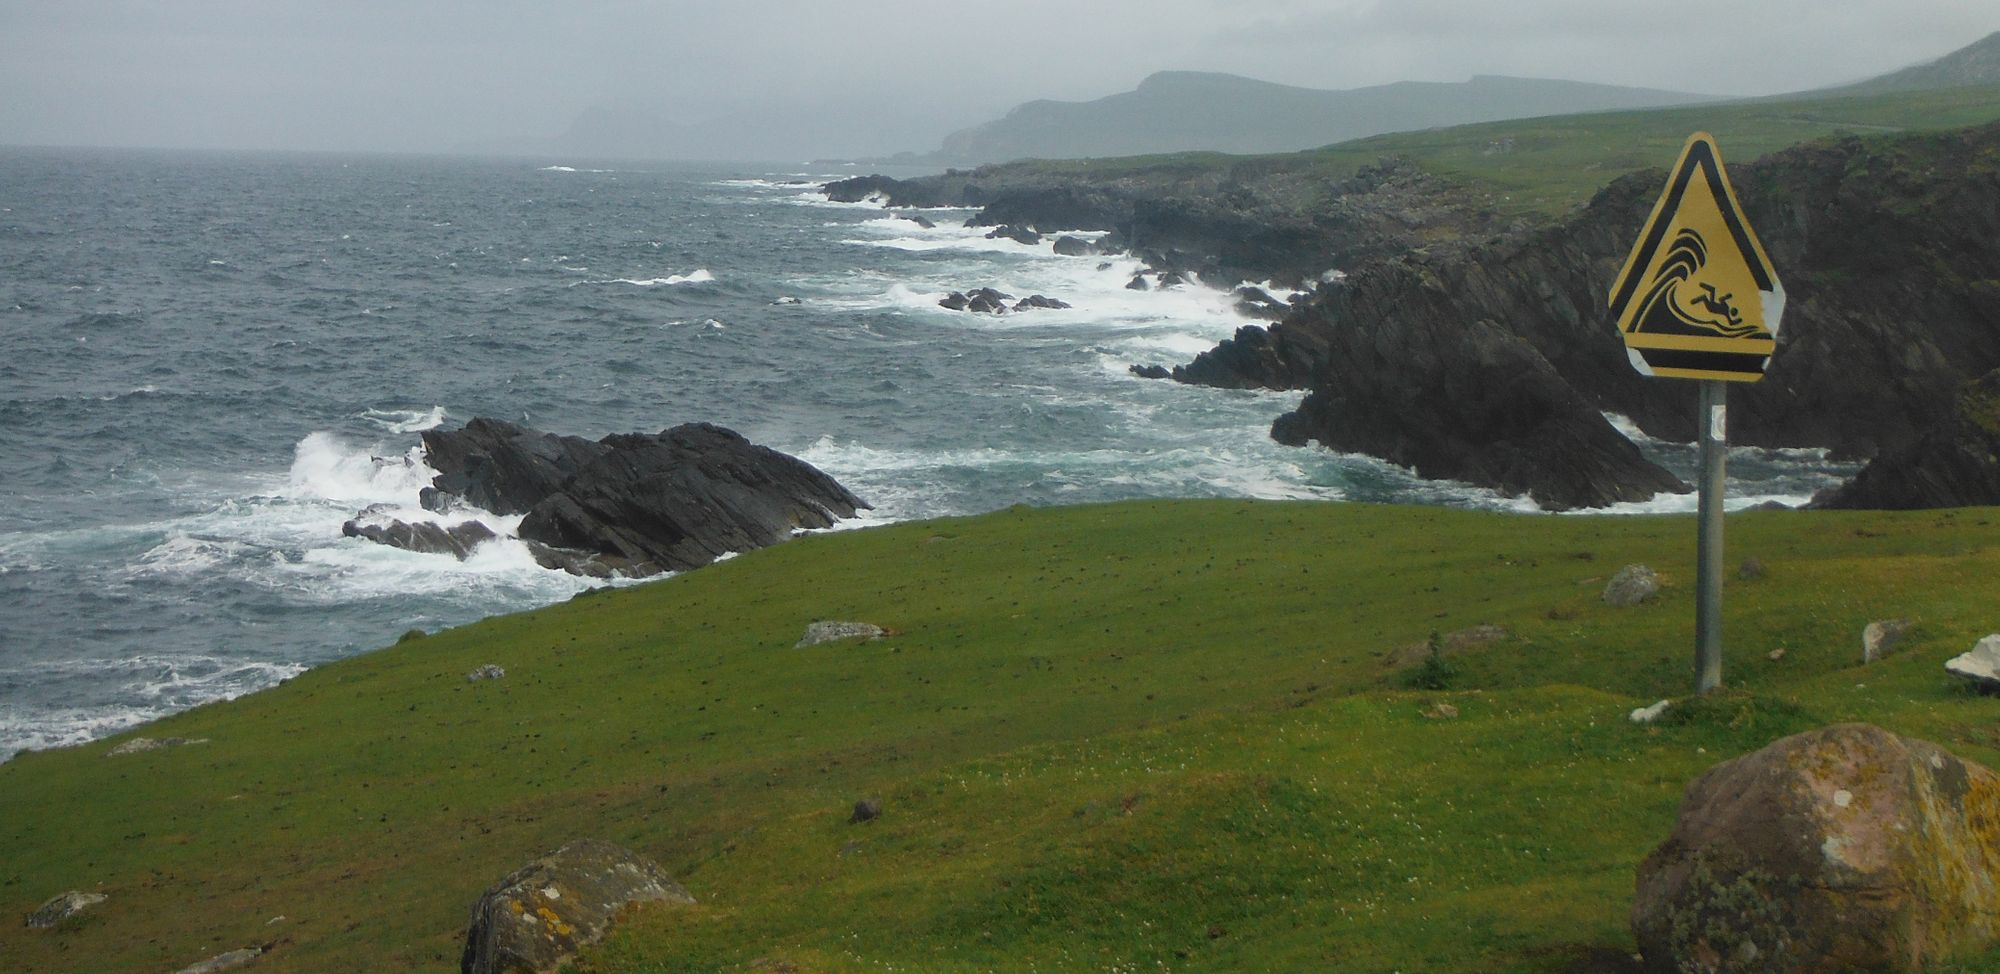 The view from Achill Island